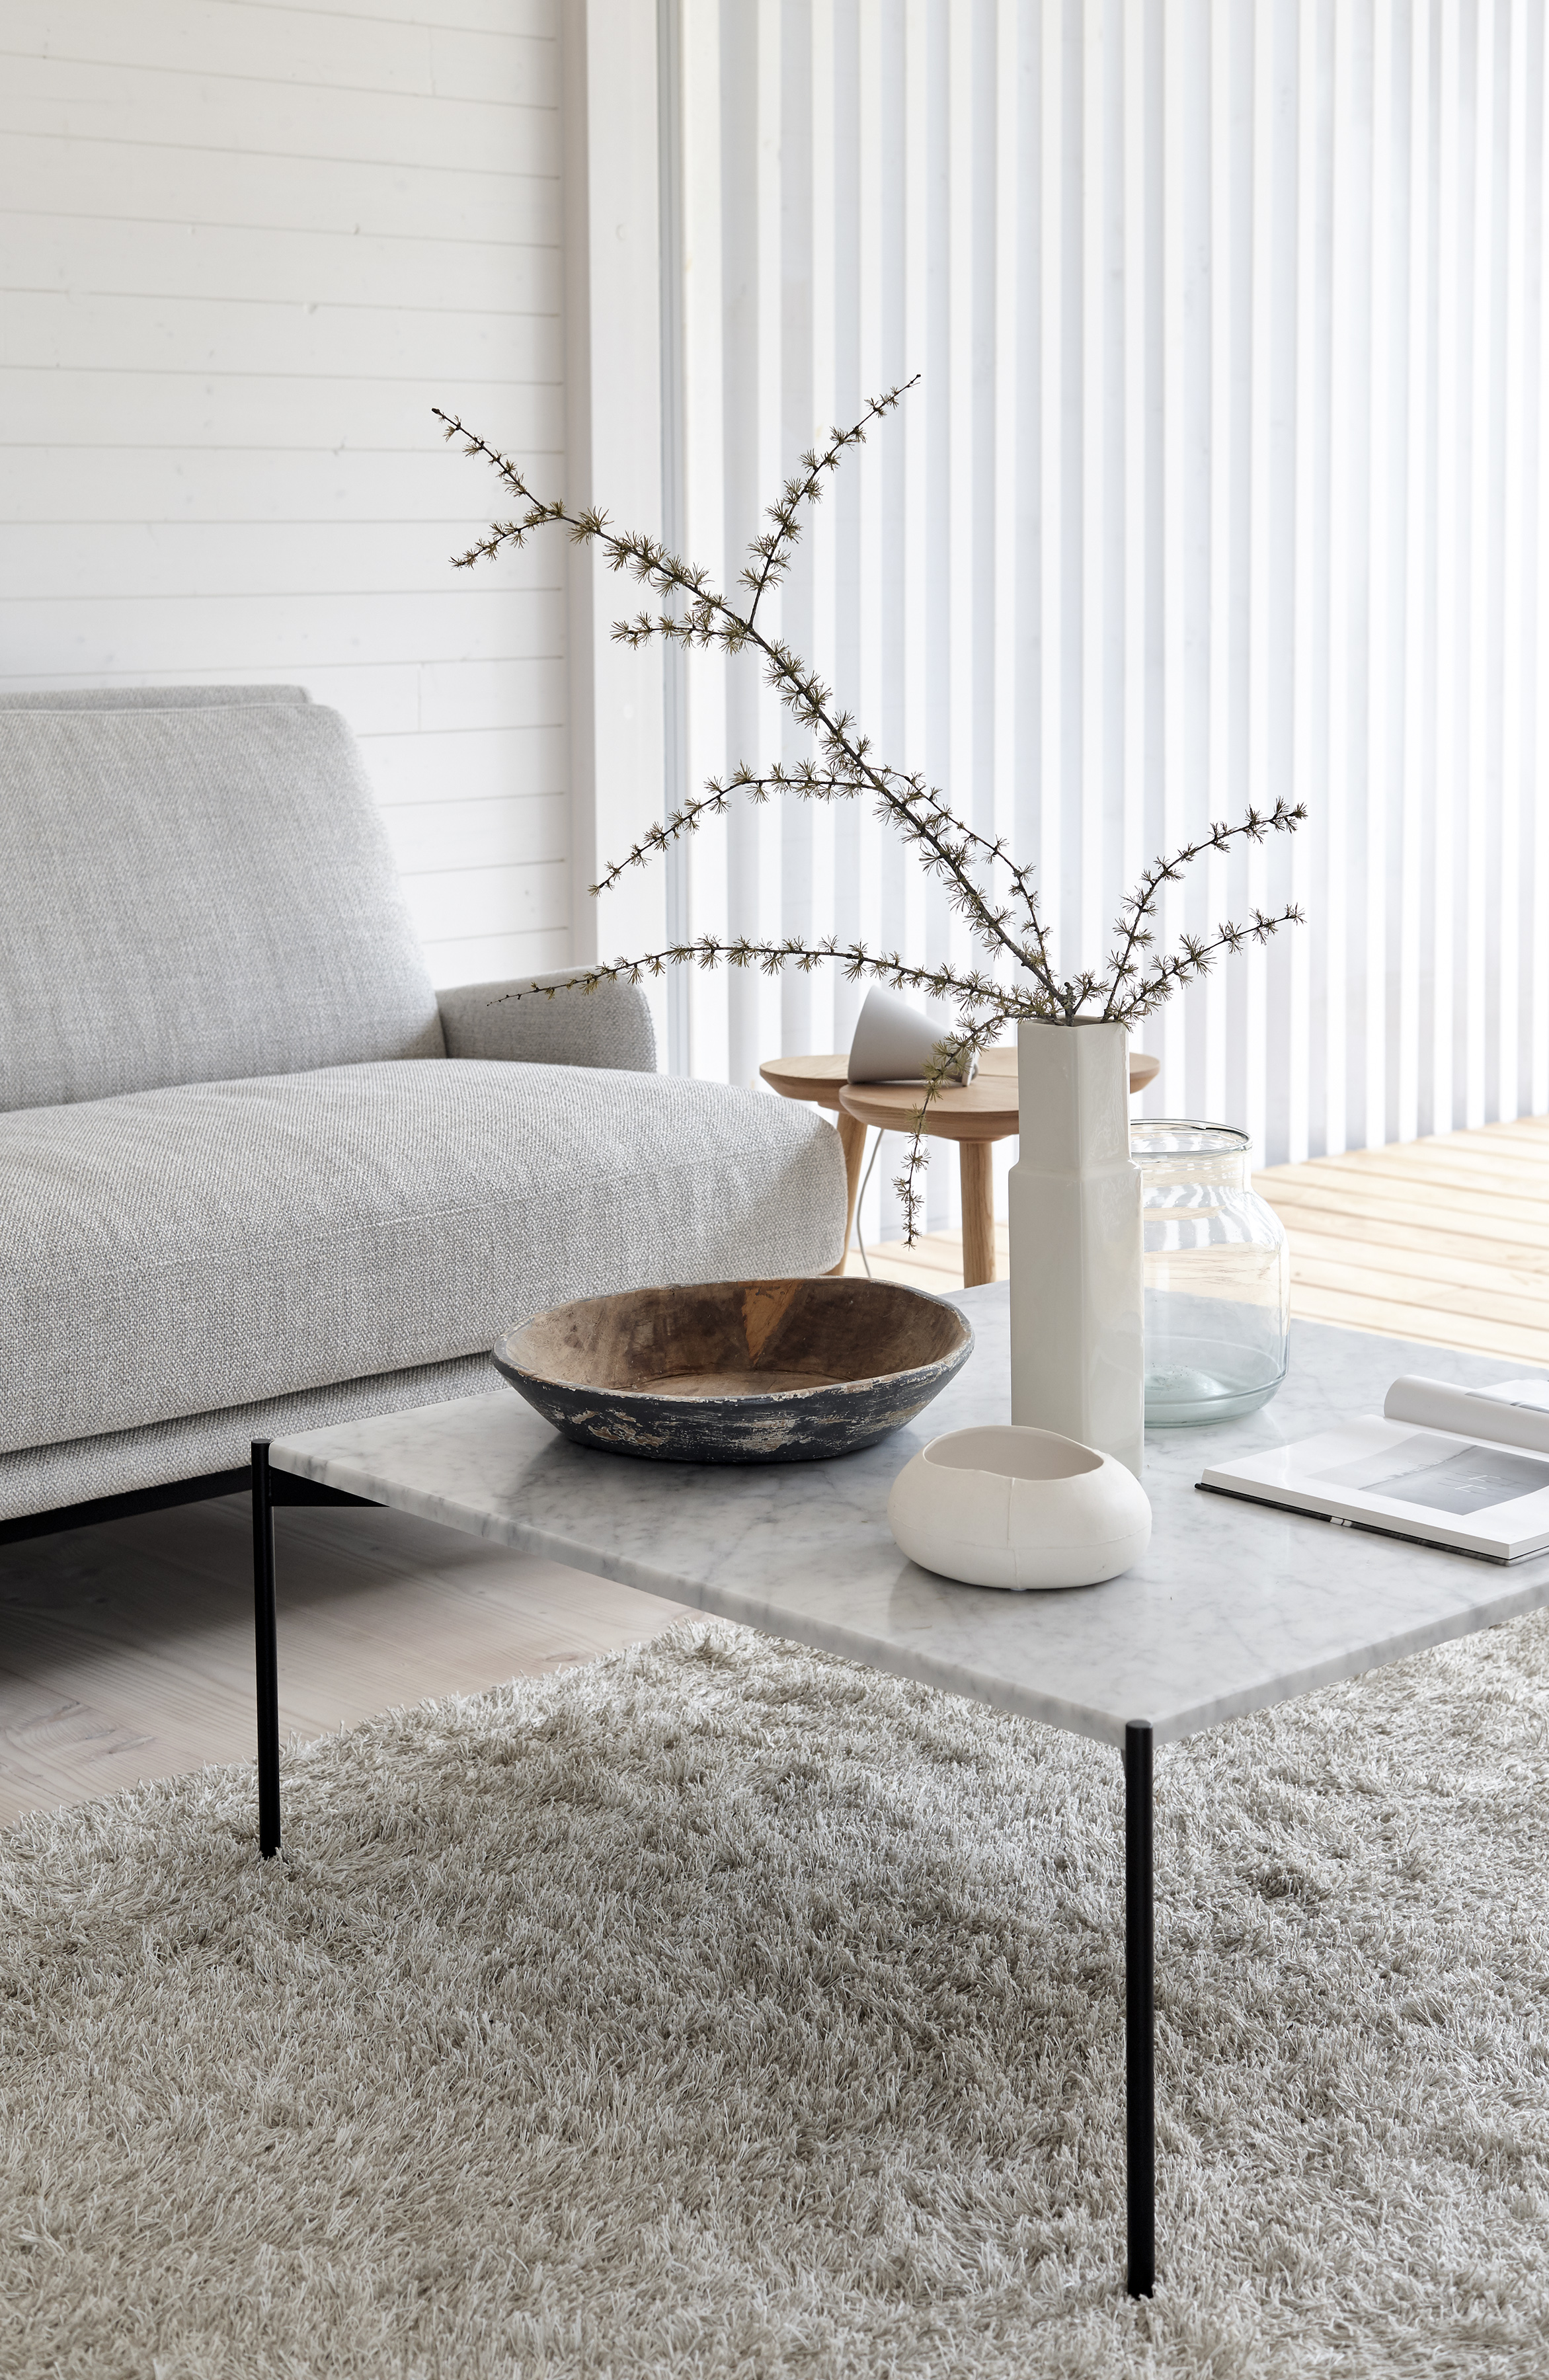 The long piles of the  Wild  1640115 light grey tufted linen wool carpet allow footprints run wildly on the surface of the carpet than footprints in the snow or sand.